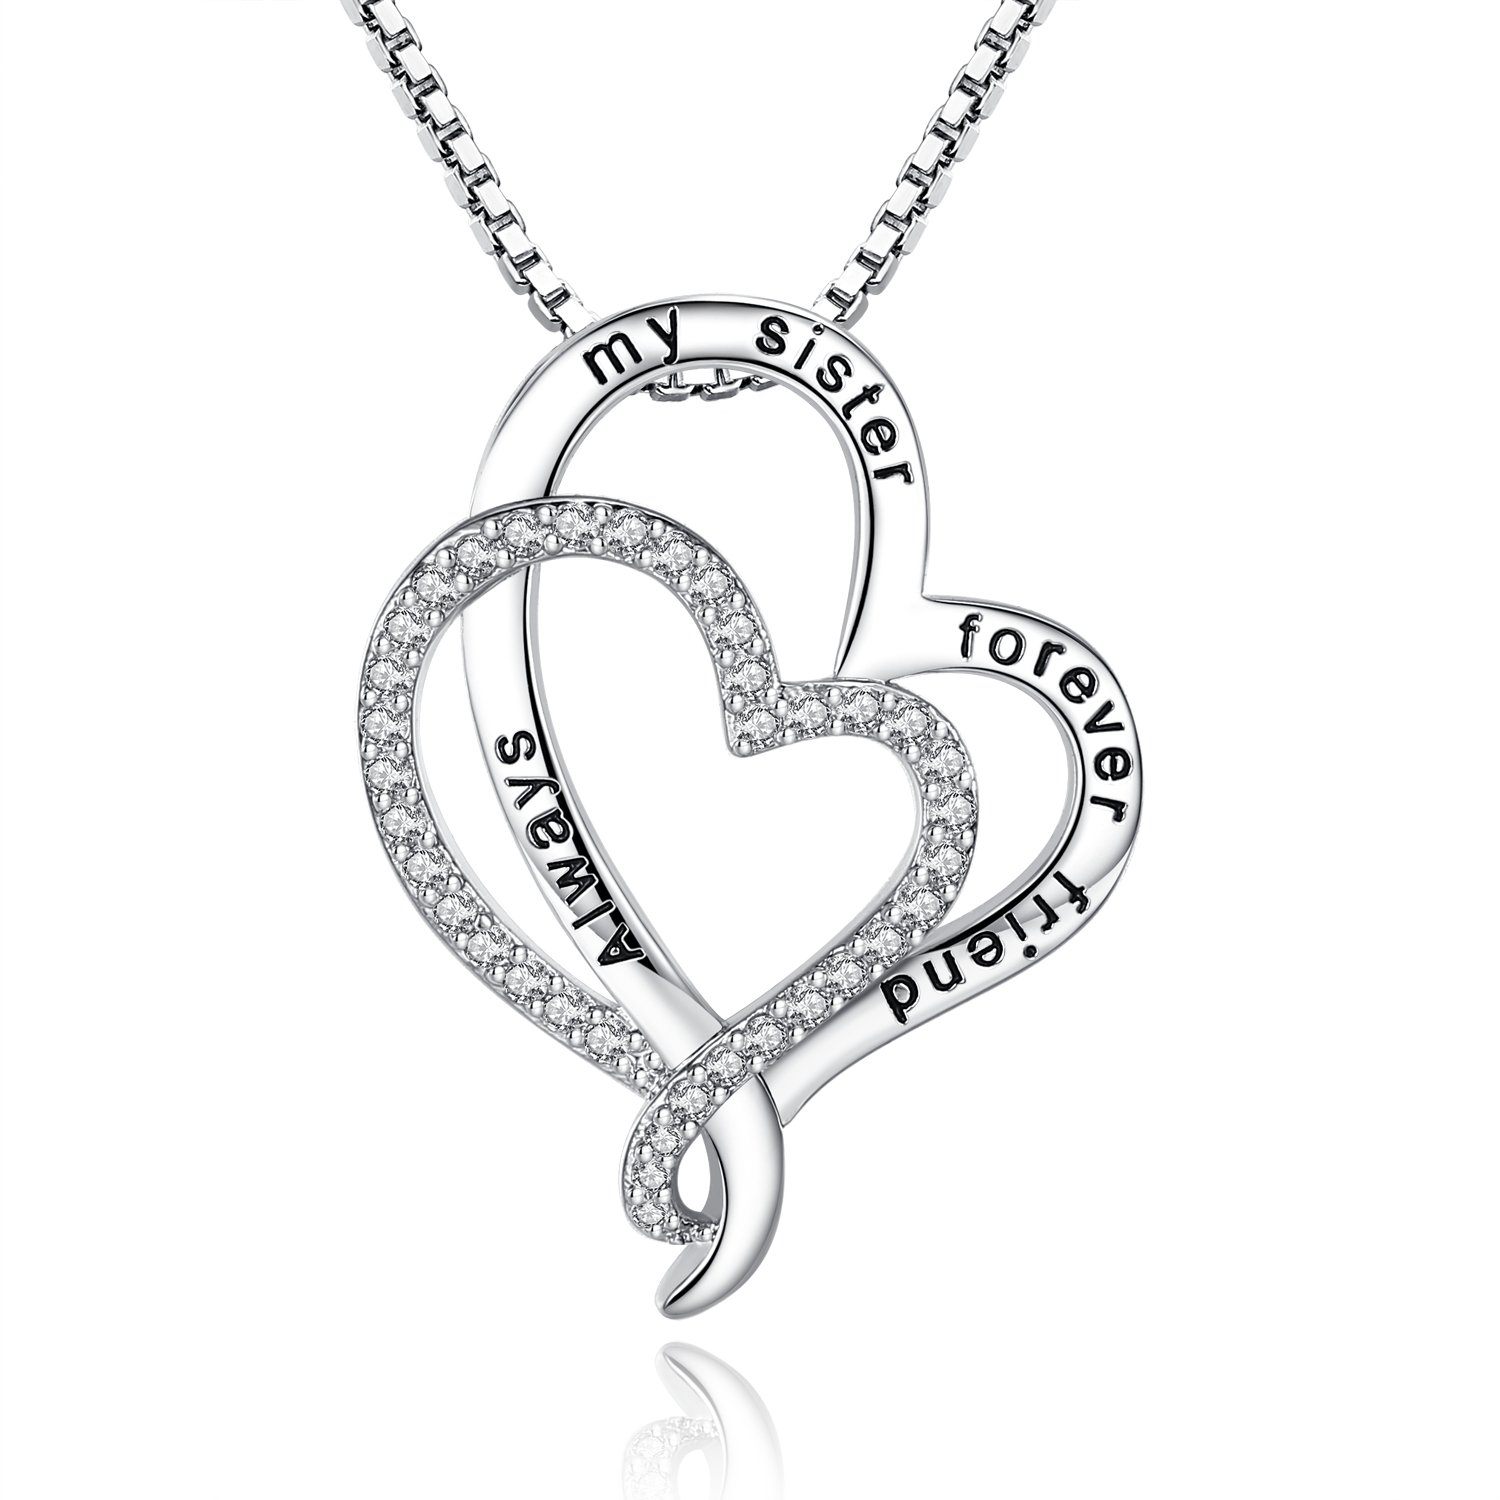 ab0dfe55ab This Love Heart Friendship sister necklace is stamped with \'always my sister  forever friend\'. Inner Diameter: 21mm; Width: 28mm; this pendant necklace  ...